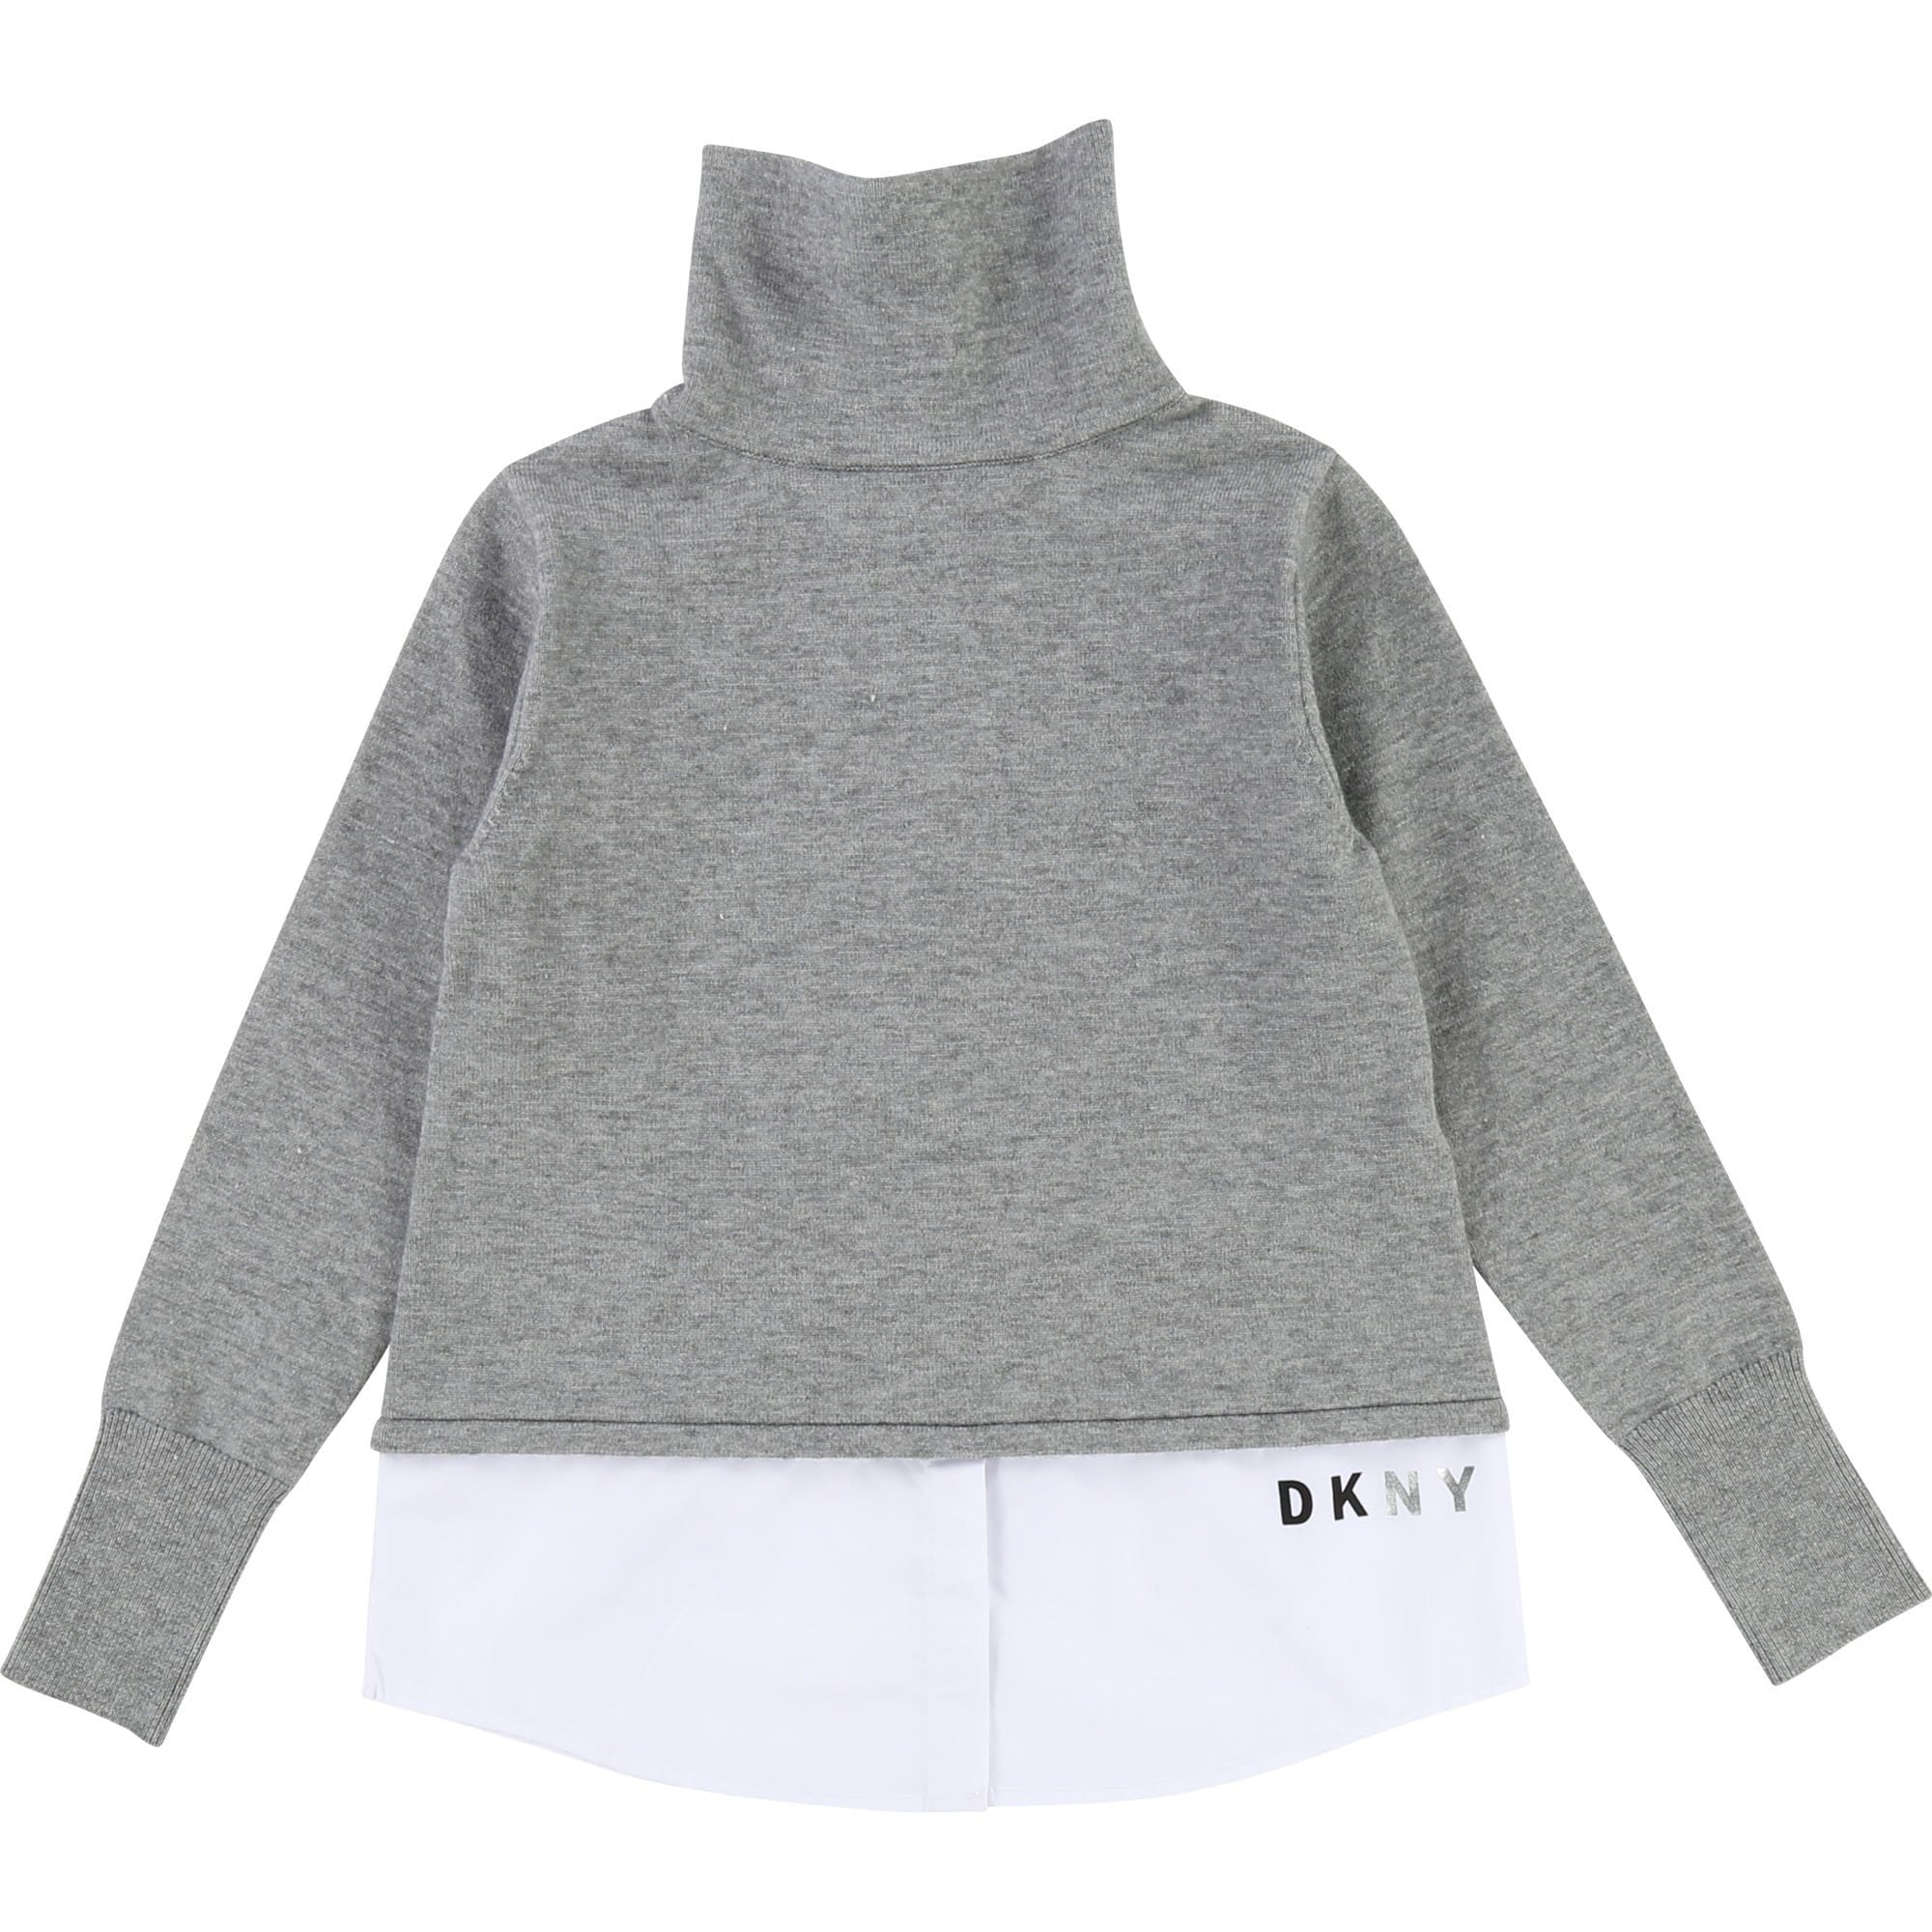 DKNY High Neck Layered Knit Jumper